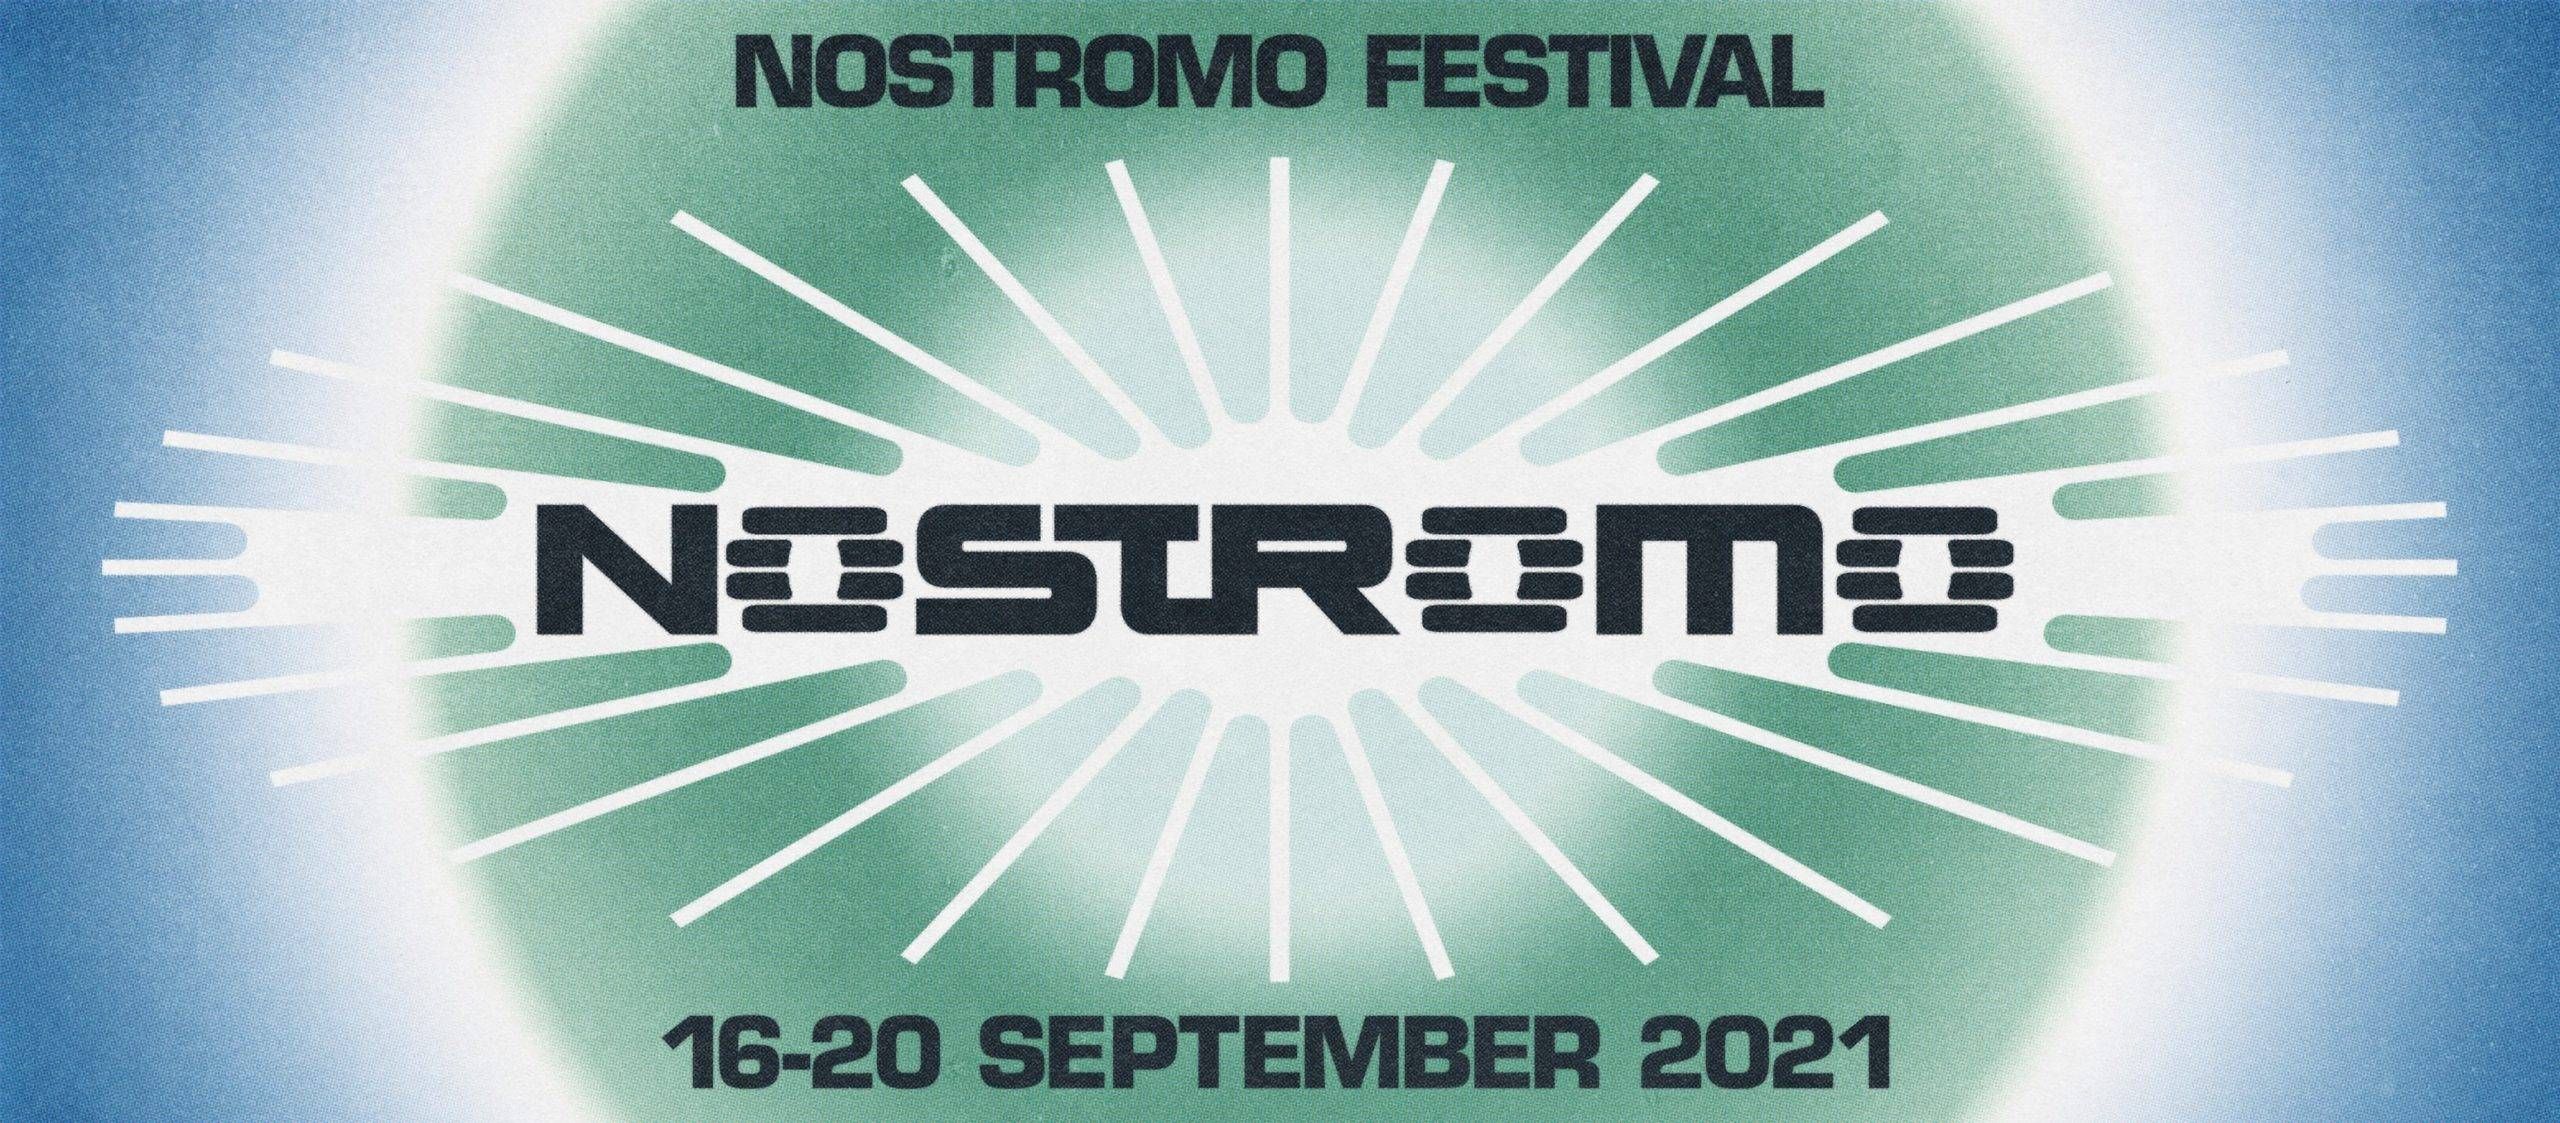 Nostromo festival has announced a lineup of 120 artists for its September edition